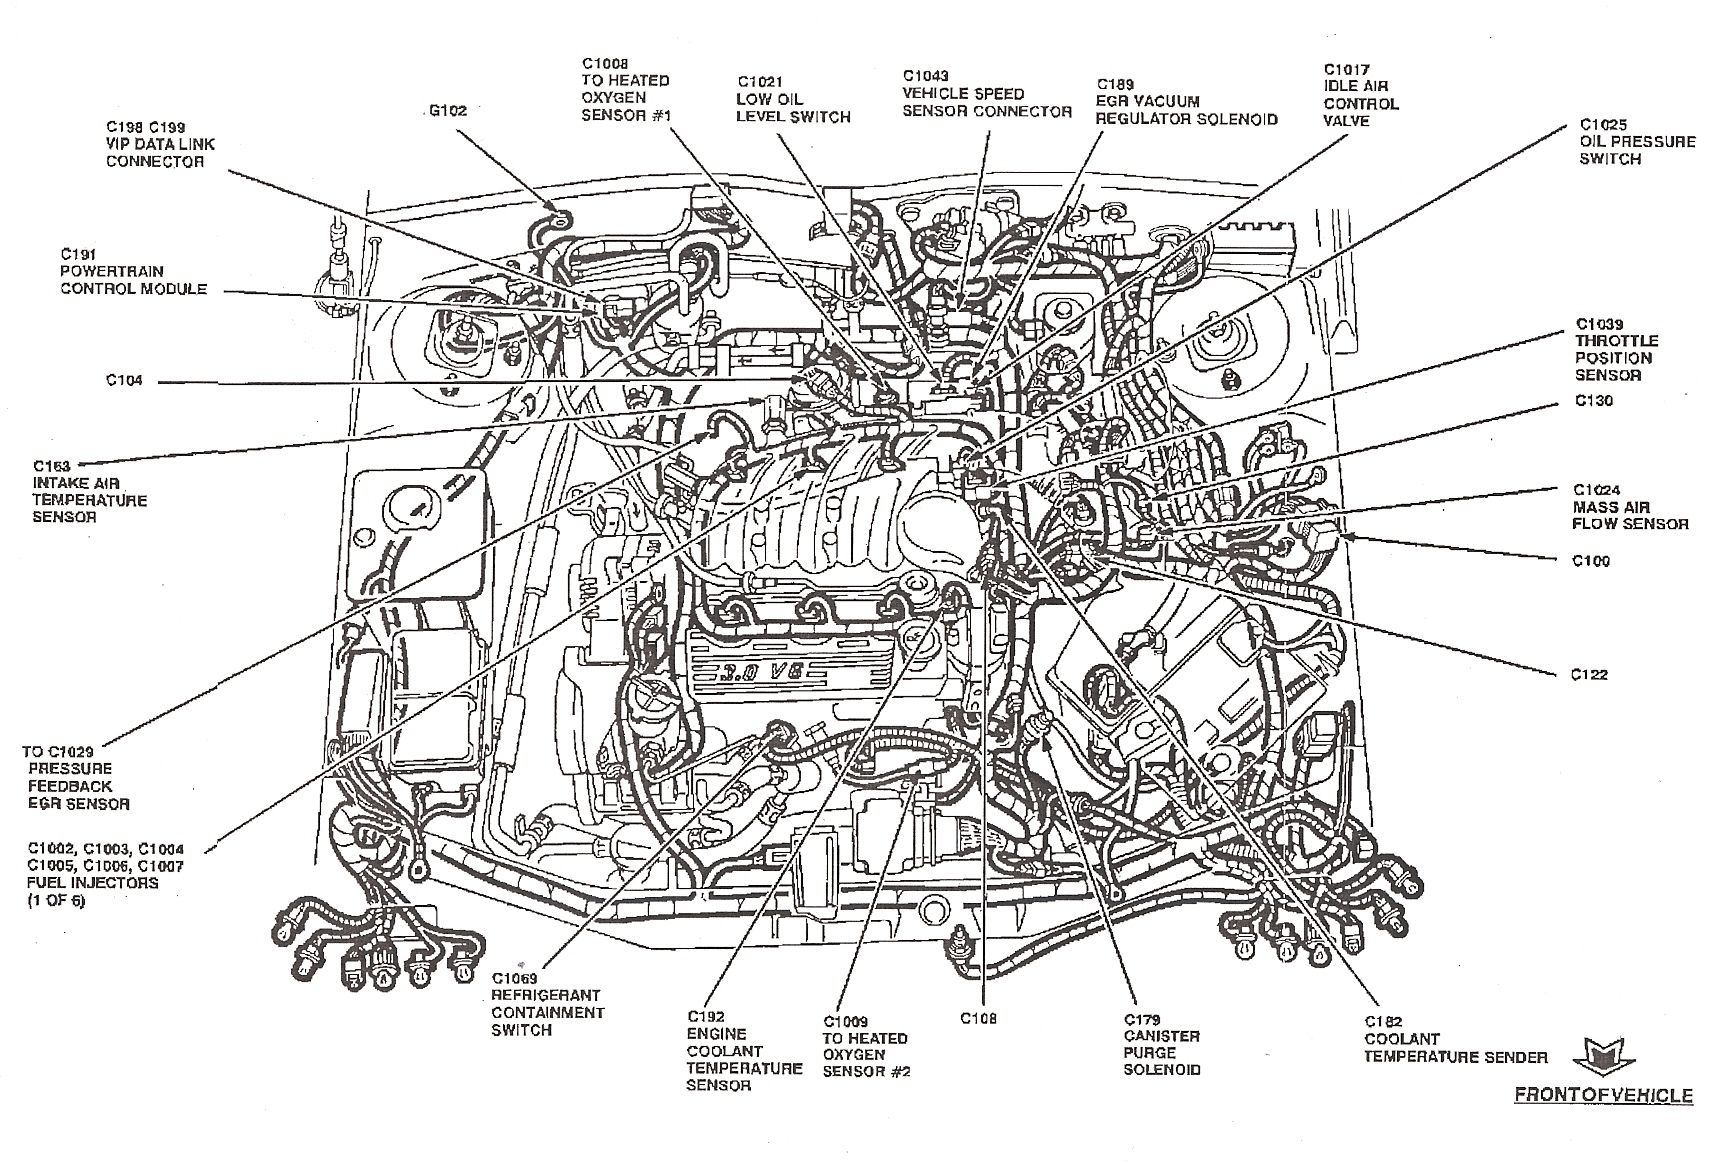 2010 ford fusion undercarriage parts diagram wiring diagram services u2022 rh otodiagramwiring today